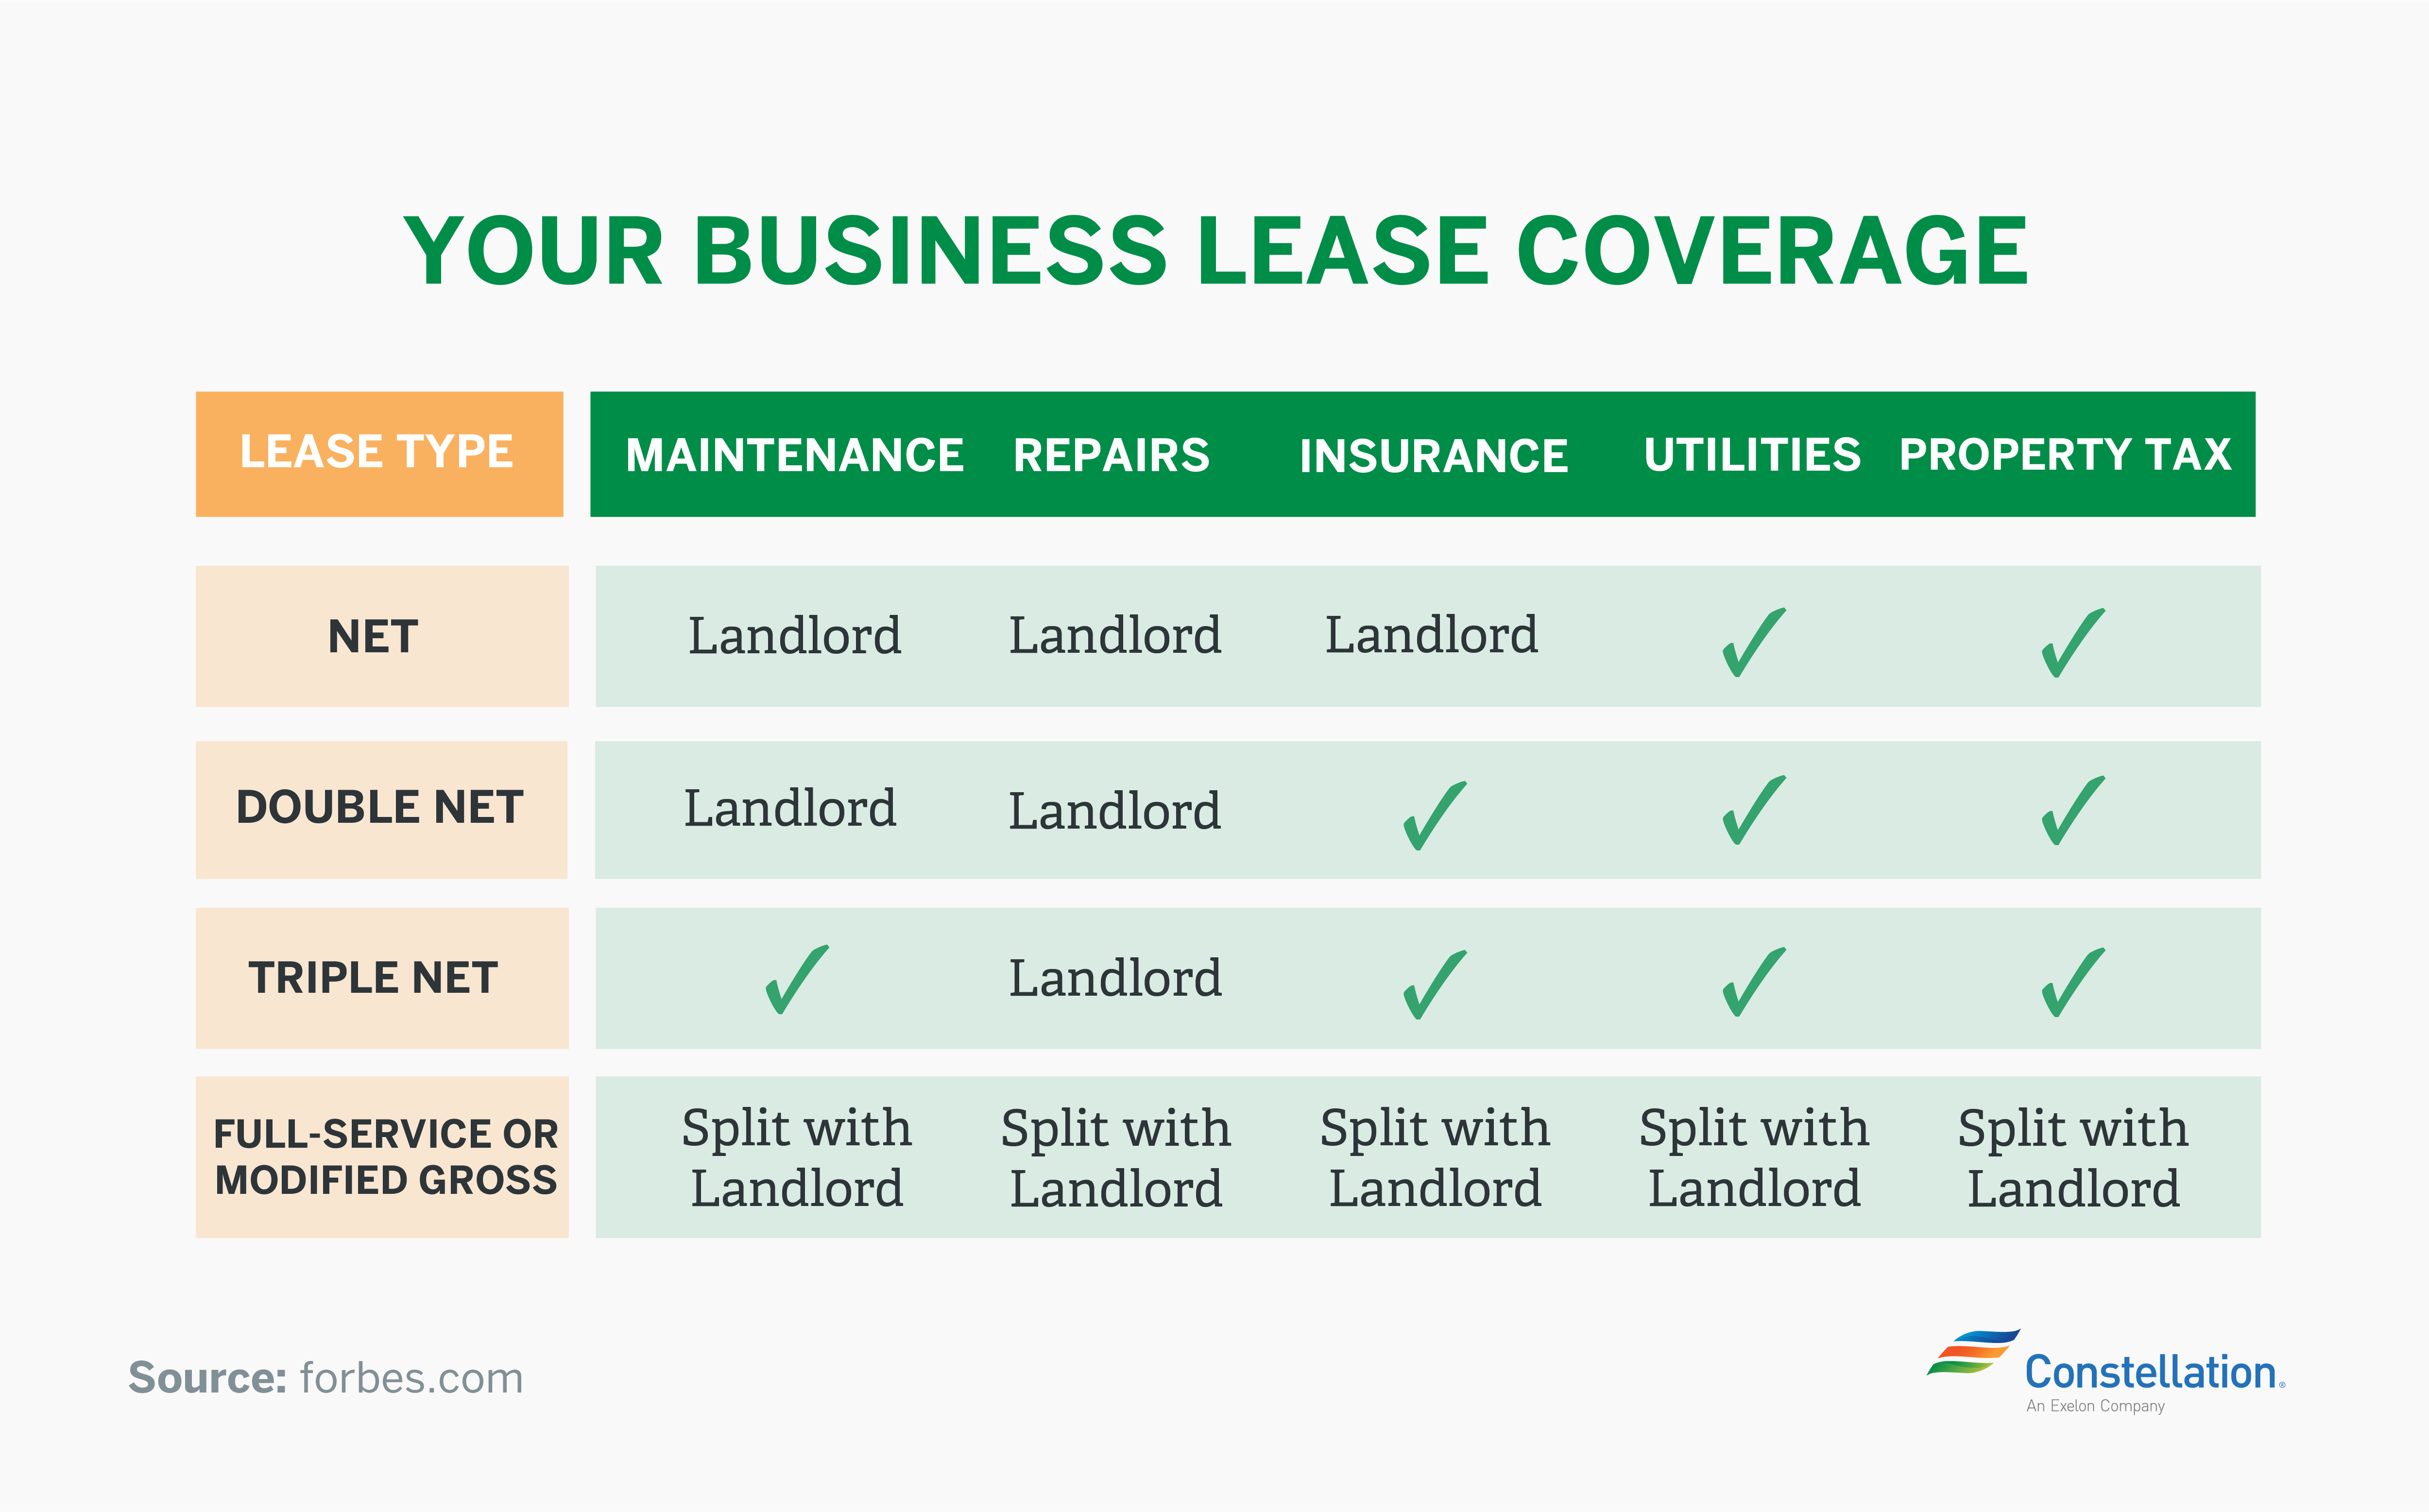 business lease coverage chart and costs